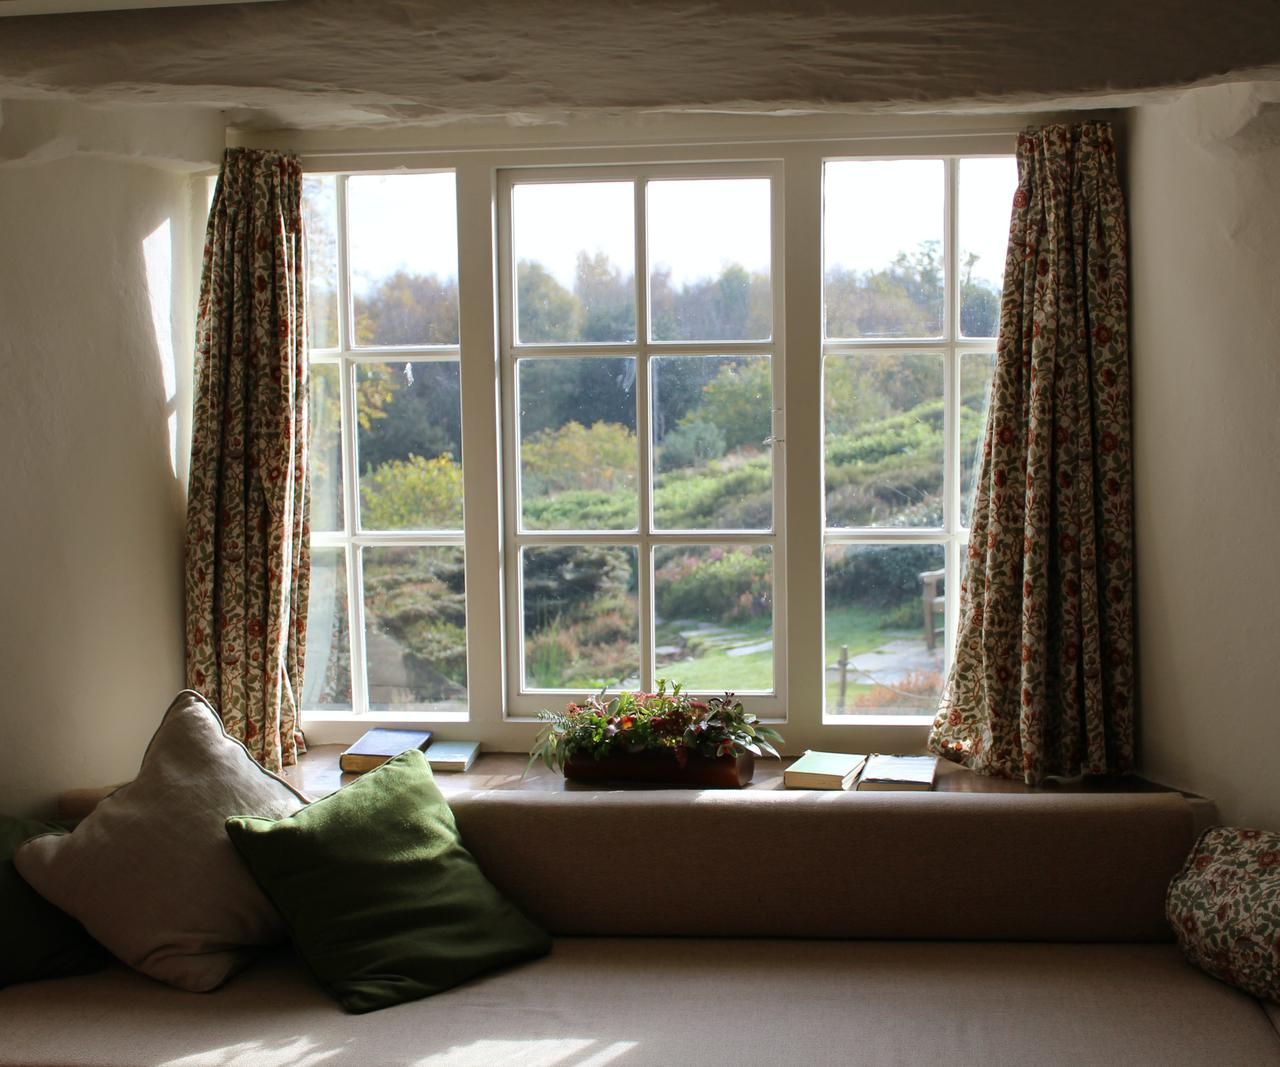 What are interior insulating window inserts?